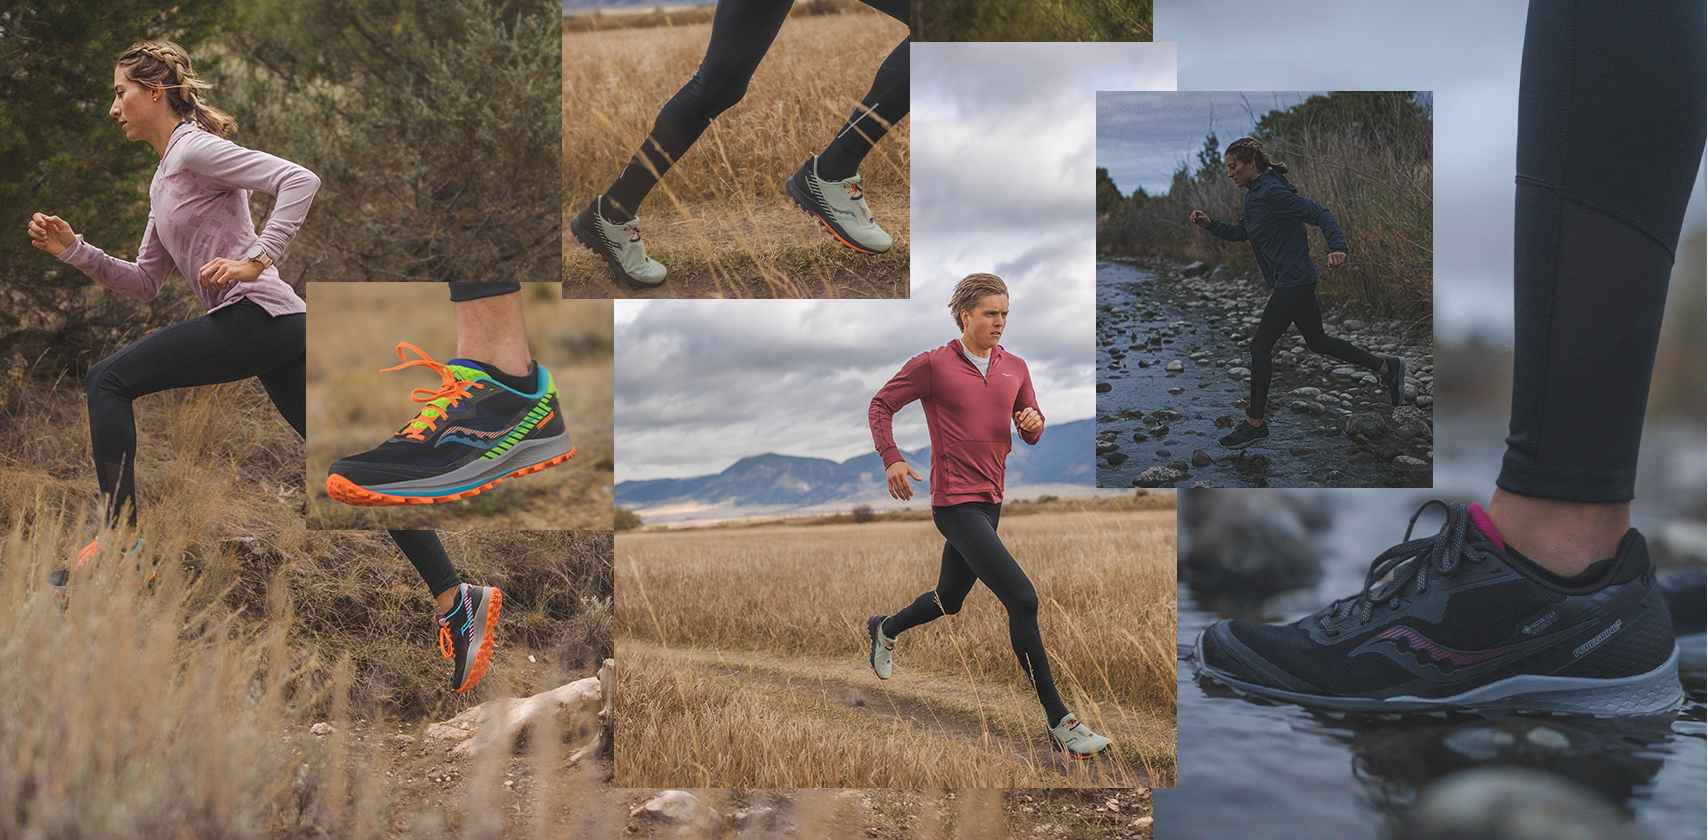 A collage of runners and their shoes hitting trails in open fields.